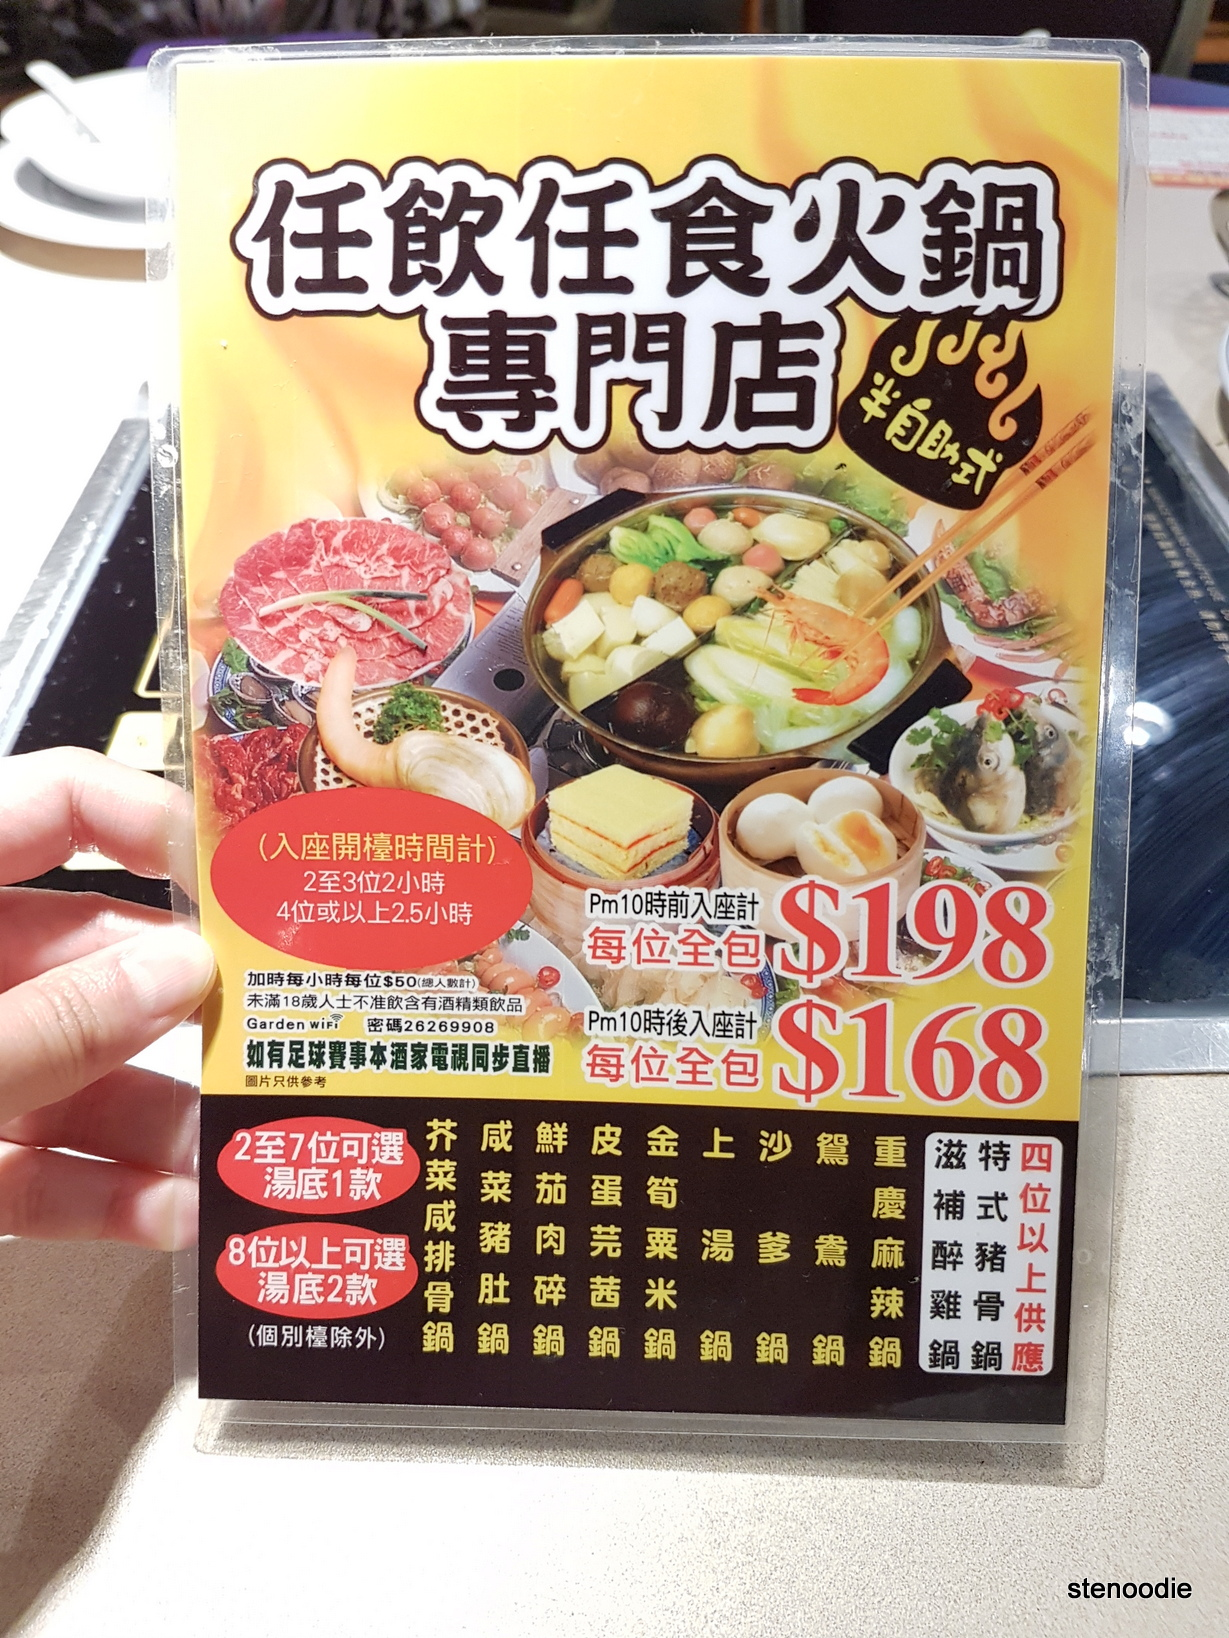 Garden Restaurant hot pot prices